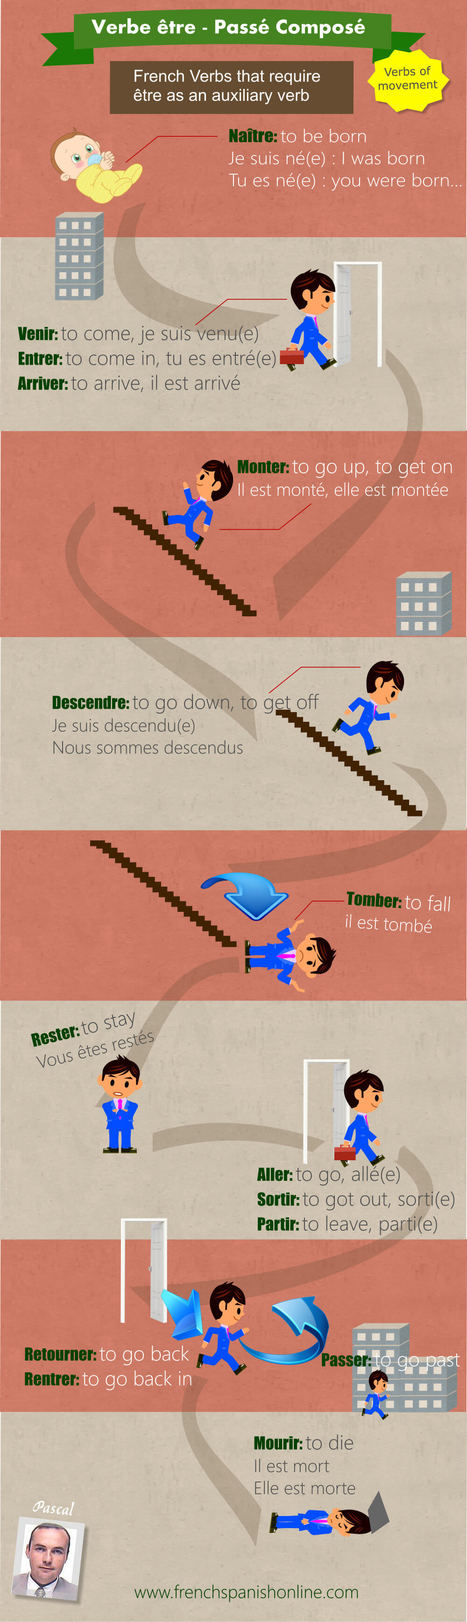 French Passé Composé « Learn French Online Learn French Online | Learn French online | Scoop.it